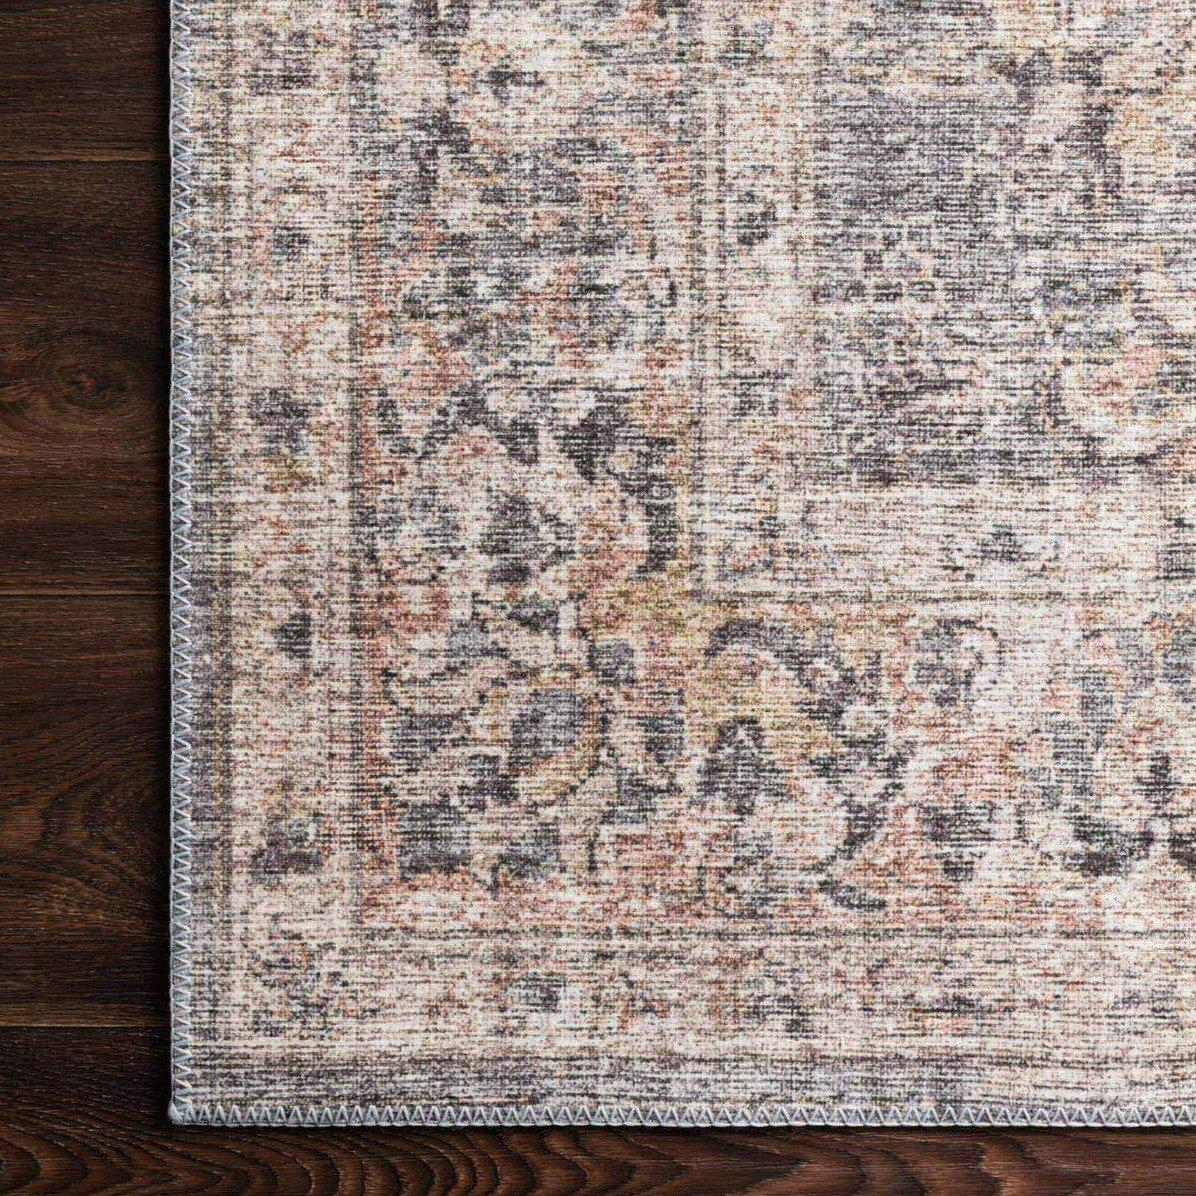 Skye Collection Printed Area Rugs - Multiple Sizes & Runners (Grey/Apricot) | Indoor | parker-gwen